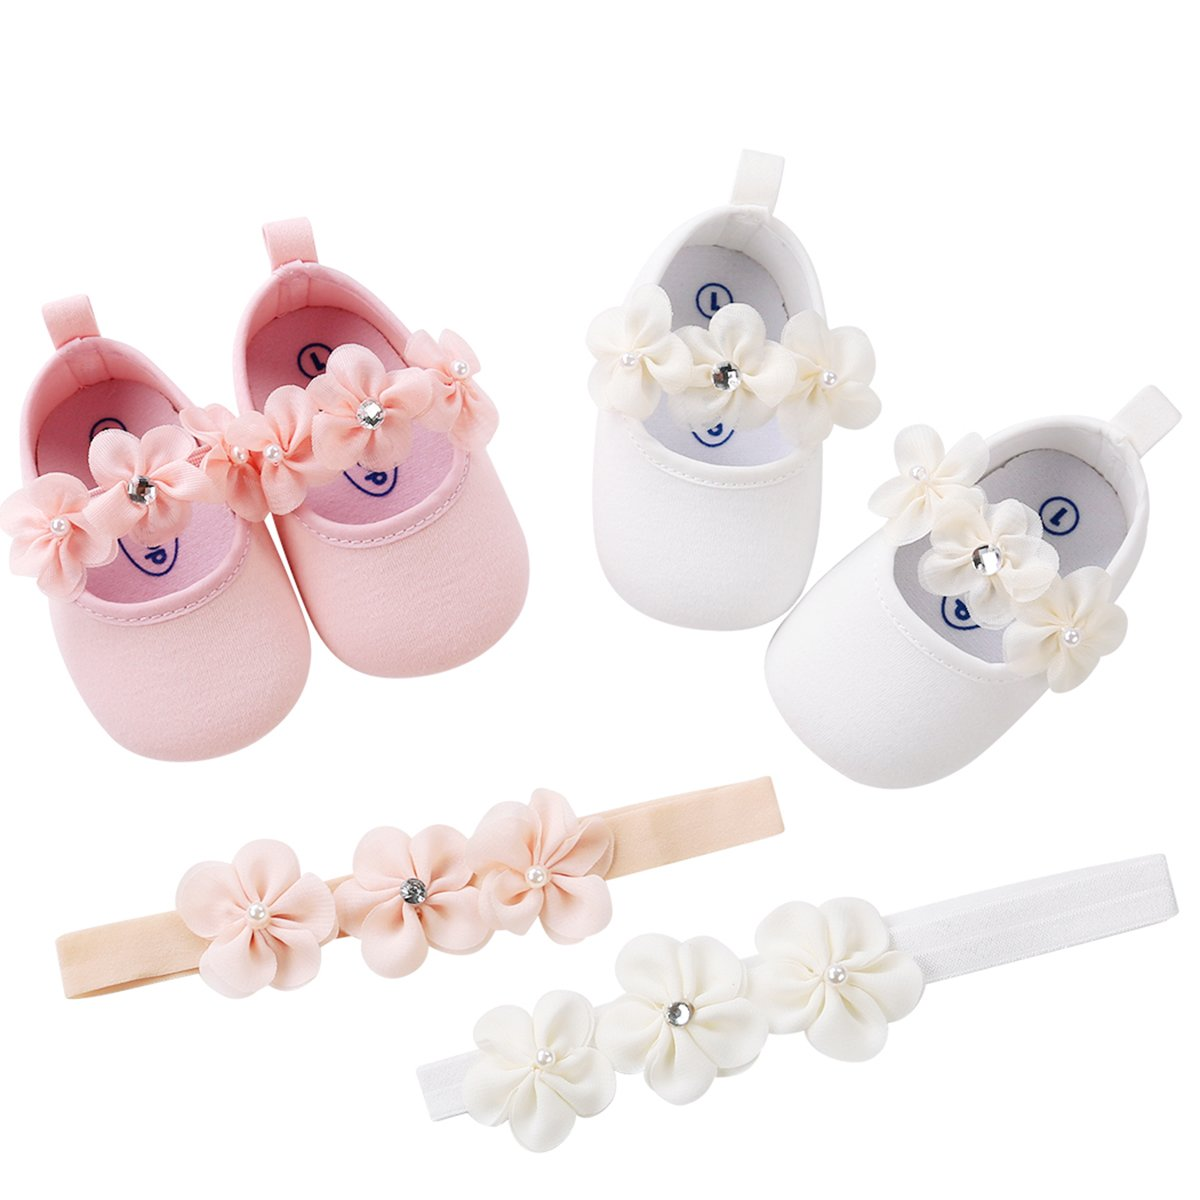 d5c6e8d3d63dc LIVEBOX Baby Girls Shoes Soft Sole Prewalker Mary Jane Princess Party Dress  Crib Shoes with Free Flower Baby Headband